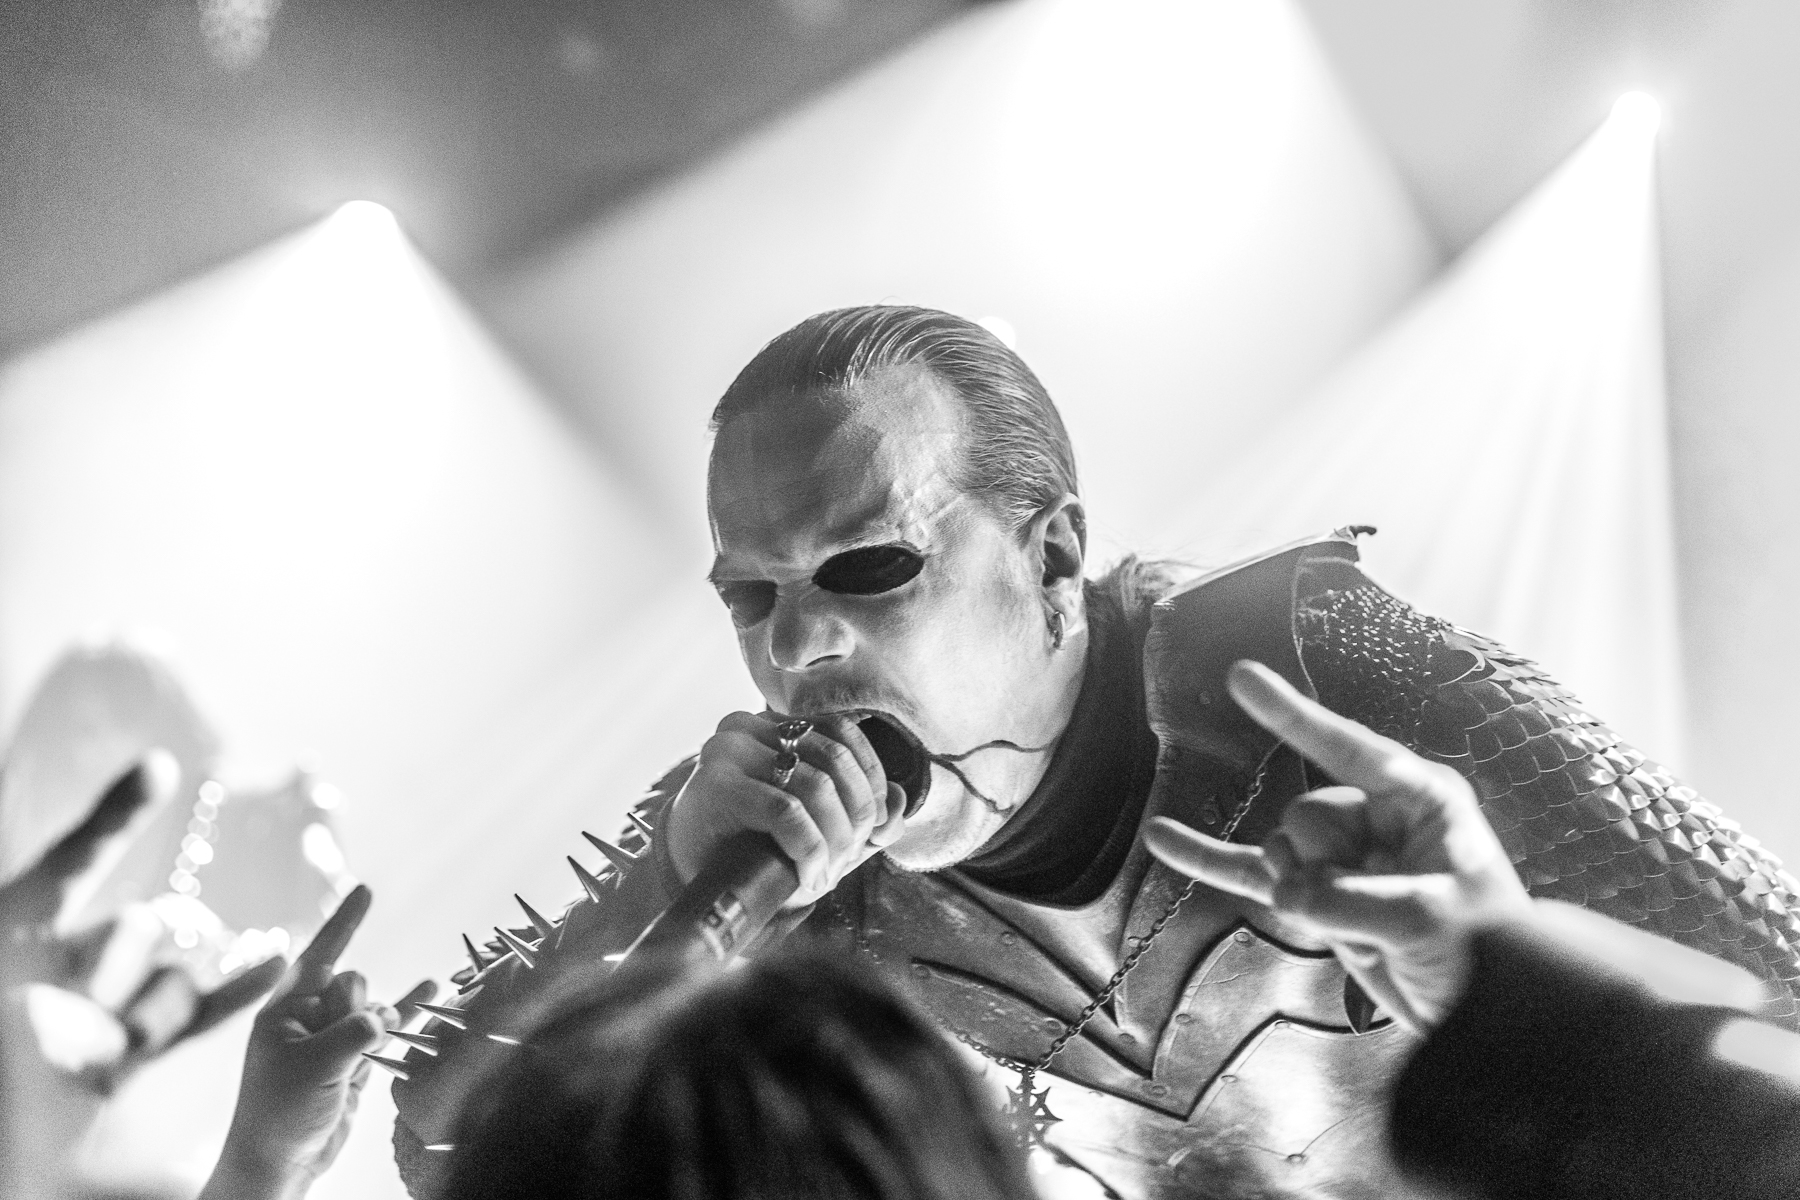 Dark Funeral at L'Astral